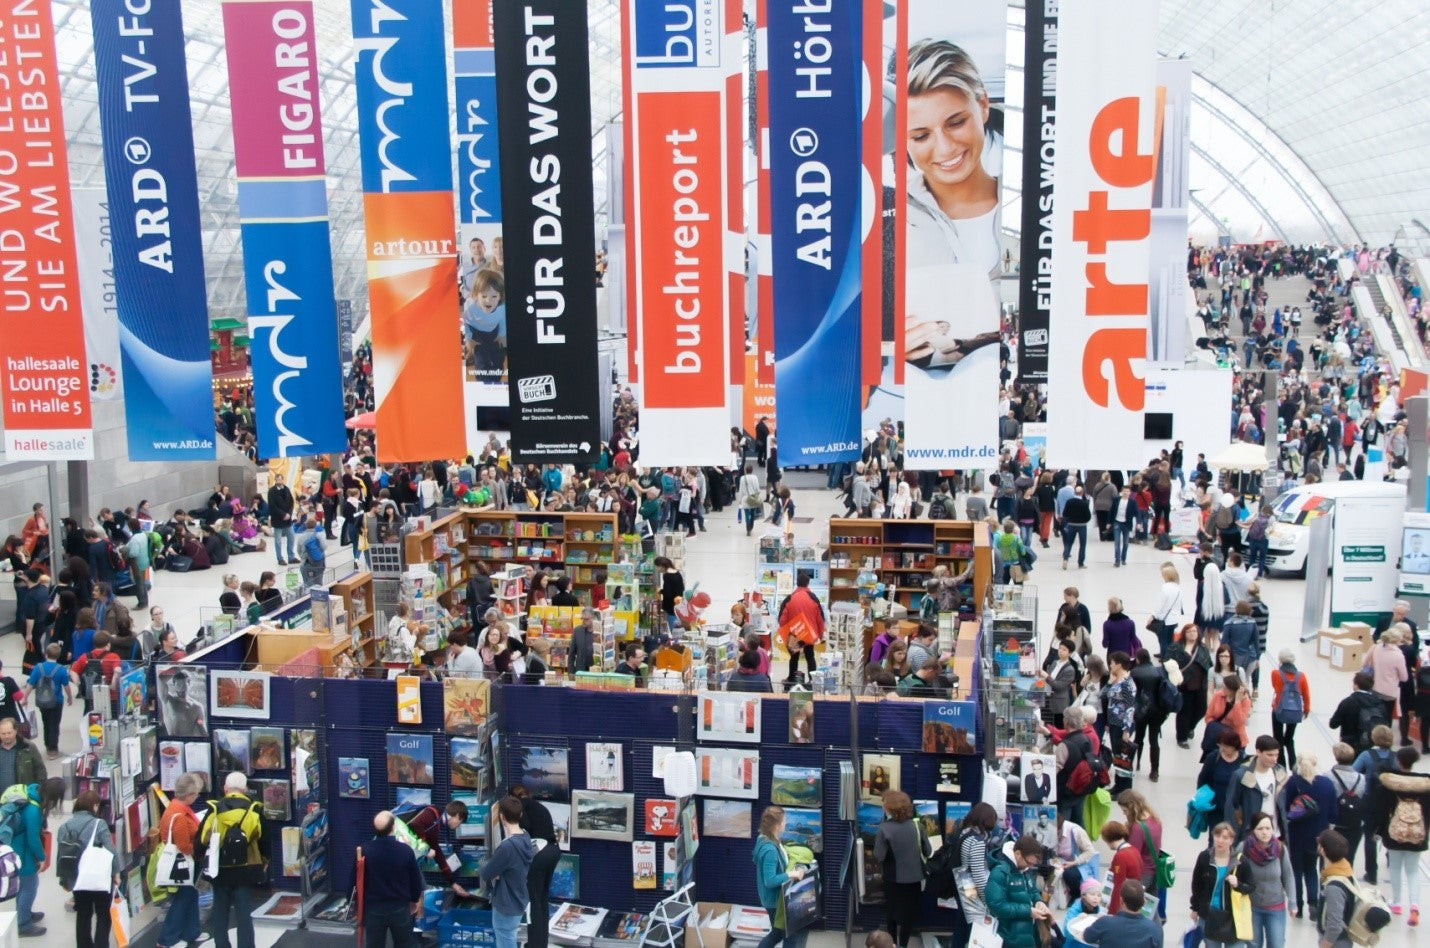 An image of visitors attending a trade show.